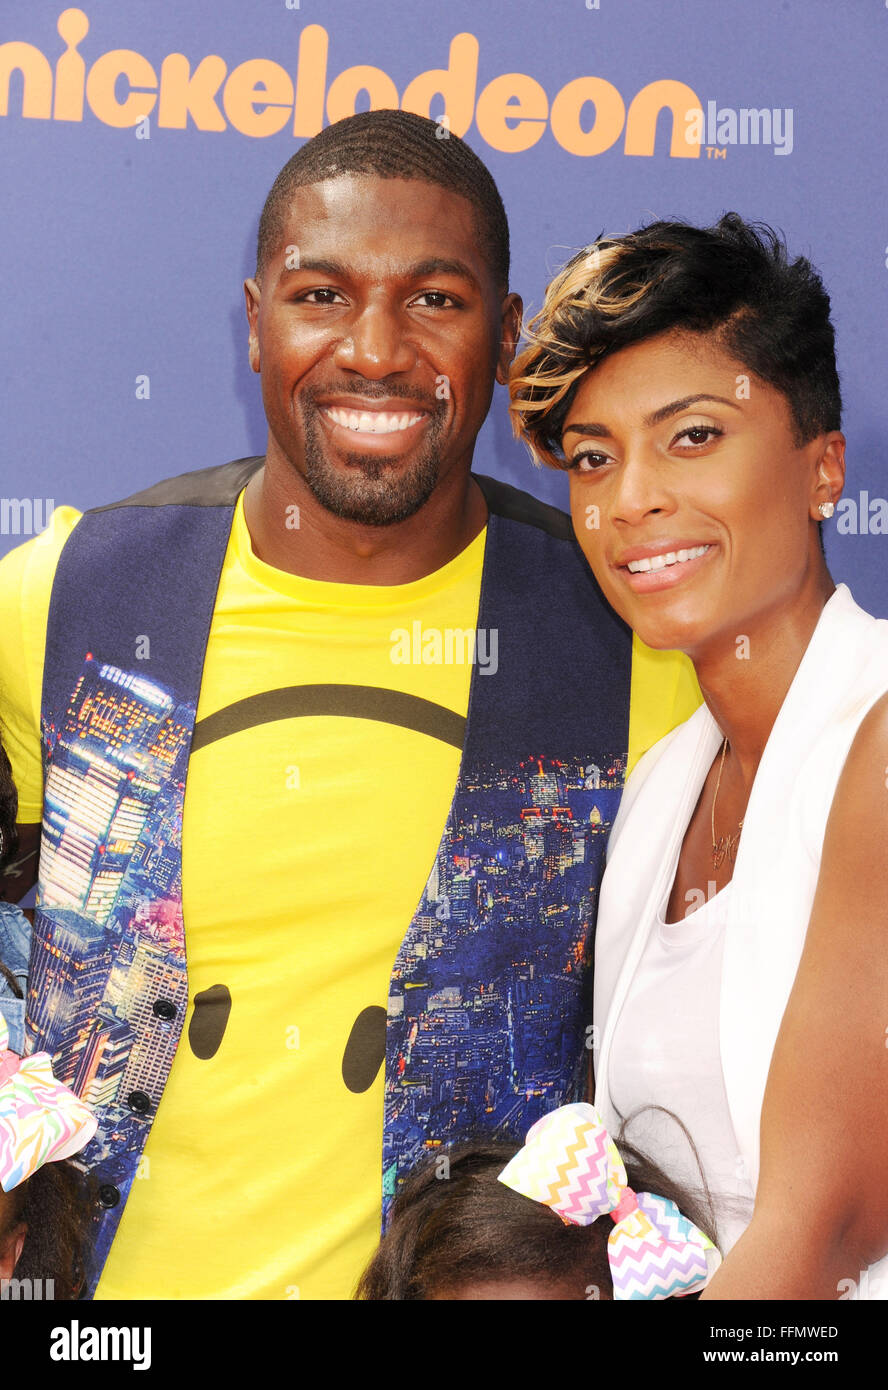 NFL player Greg Jennings and wife arrive at the Nickelodeon Kids' Choice Sports Awards 2015 at UCLA's Pauley - Stock Image